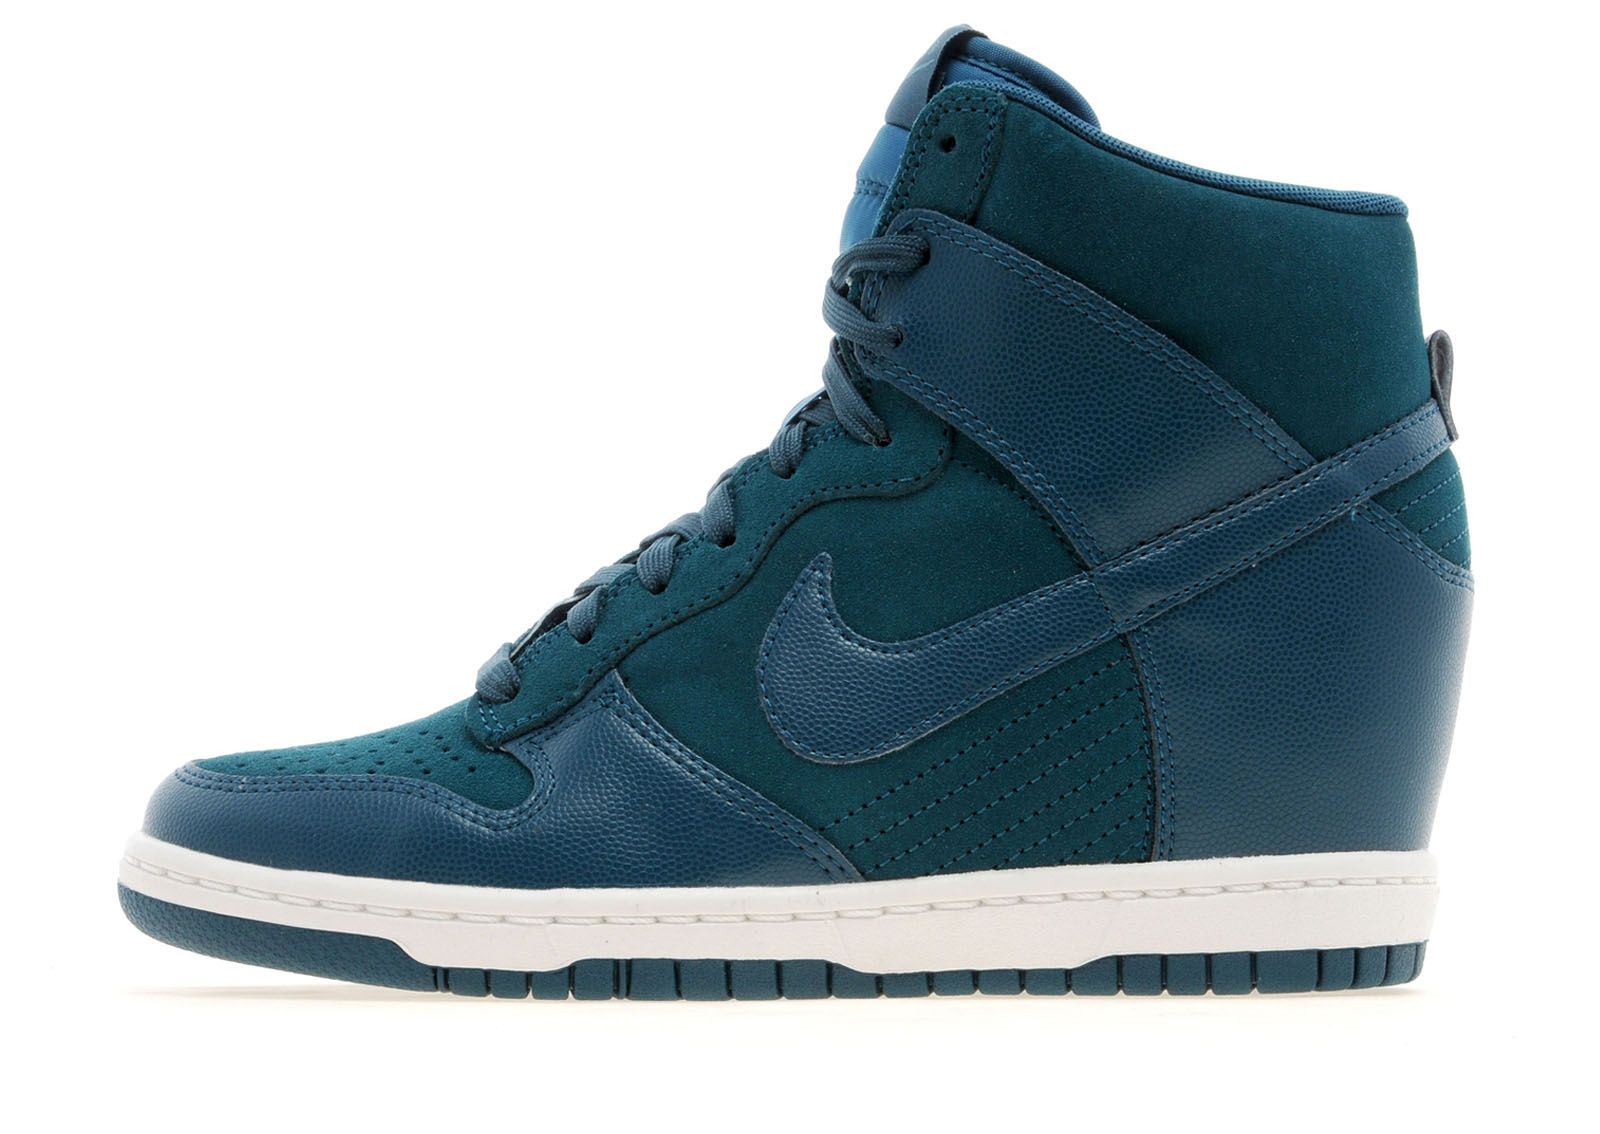 Nike Dunk Sky Hi Wedge Women's